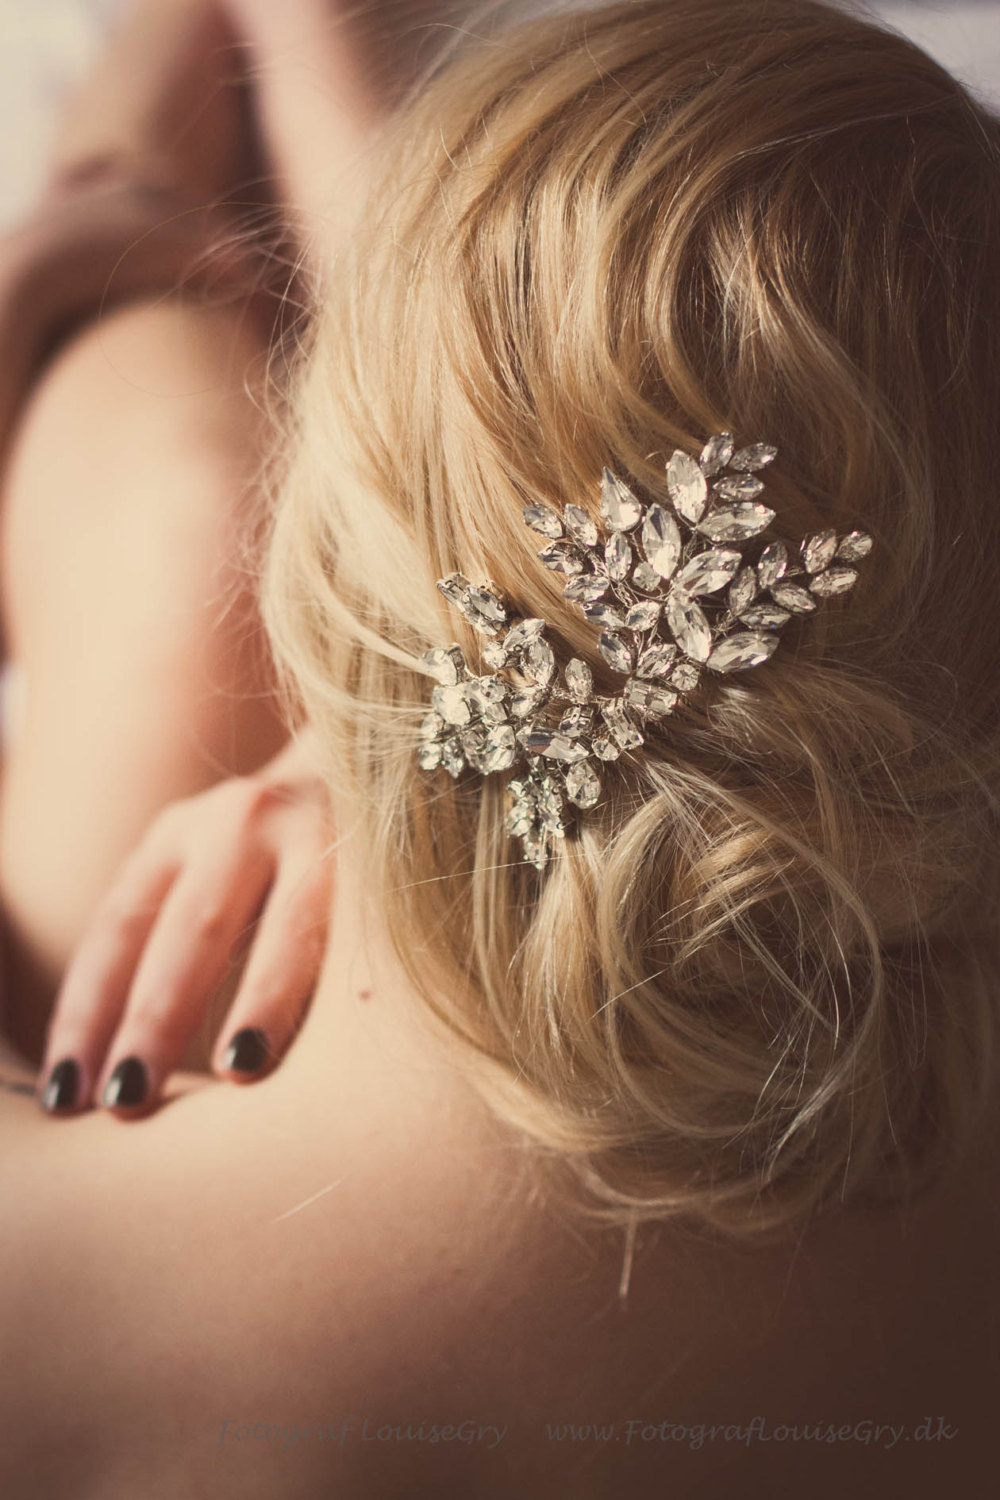 Crystal rhinestone wedding hair clip for bridal updo | OneWed.com